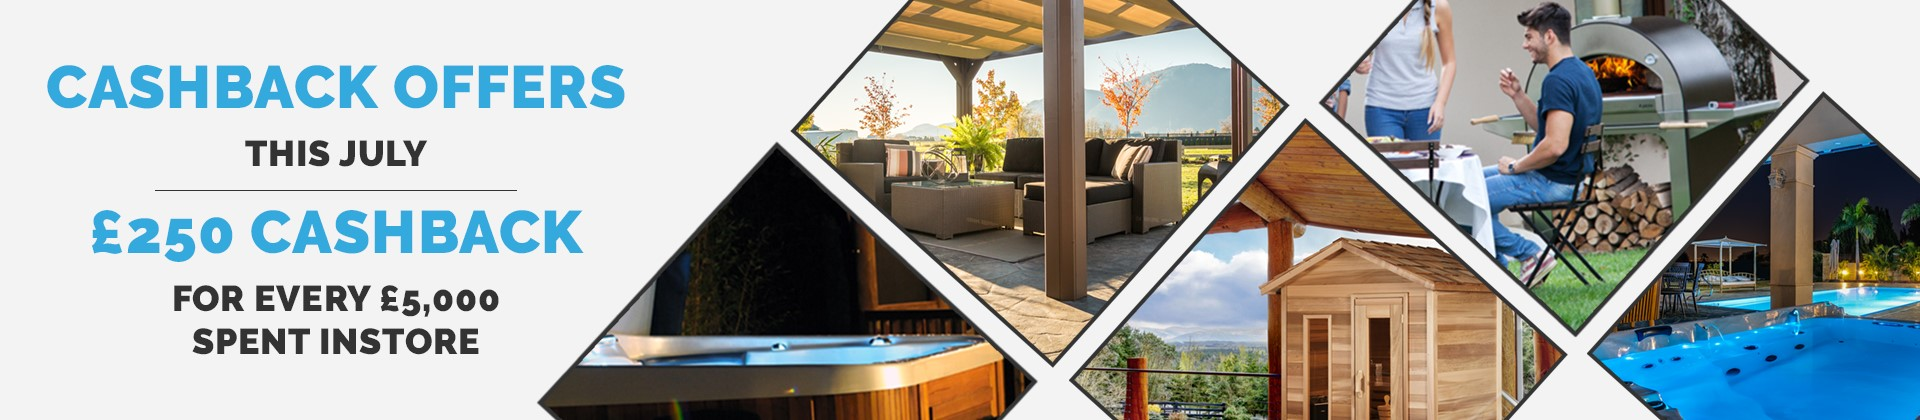 Cashback Offers with Hot Tubs